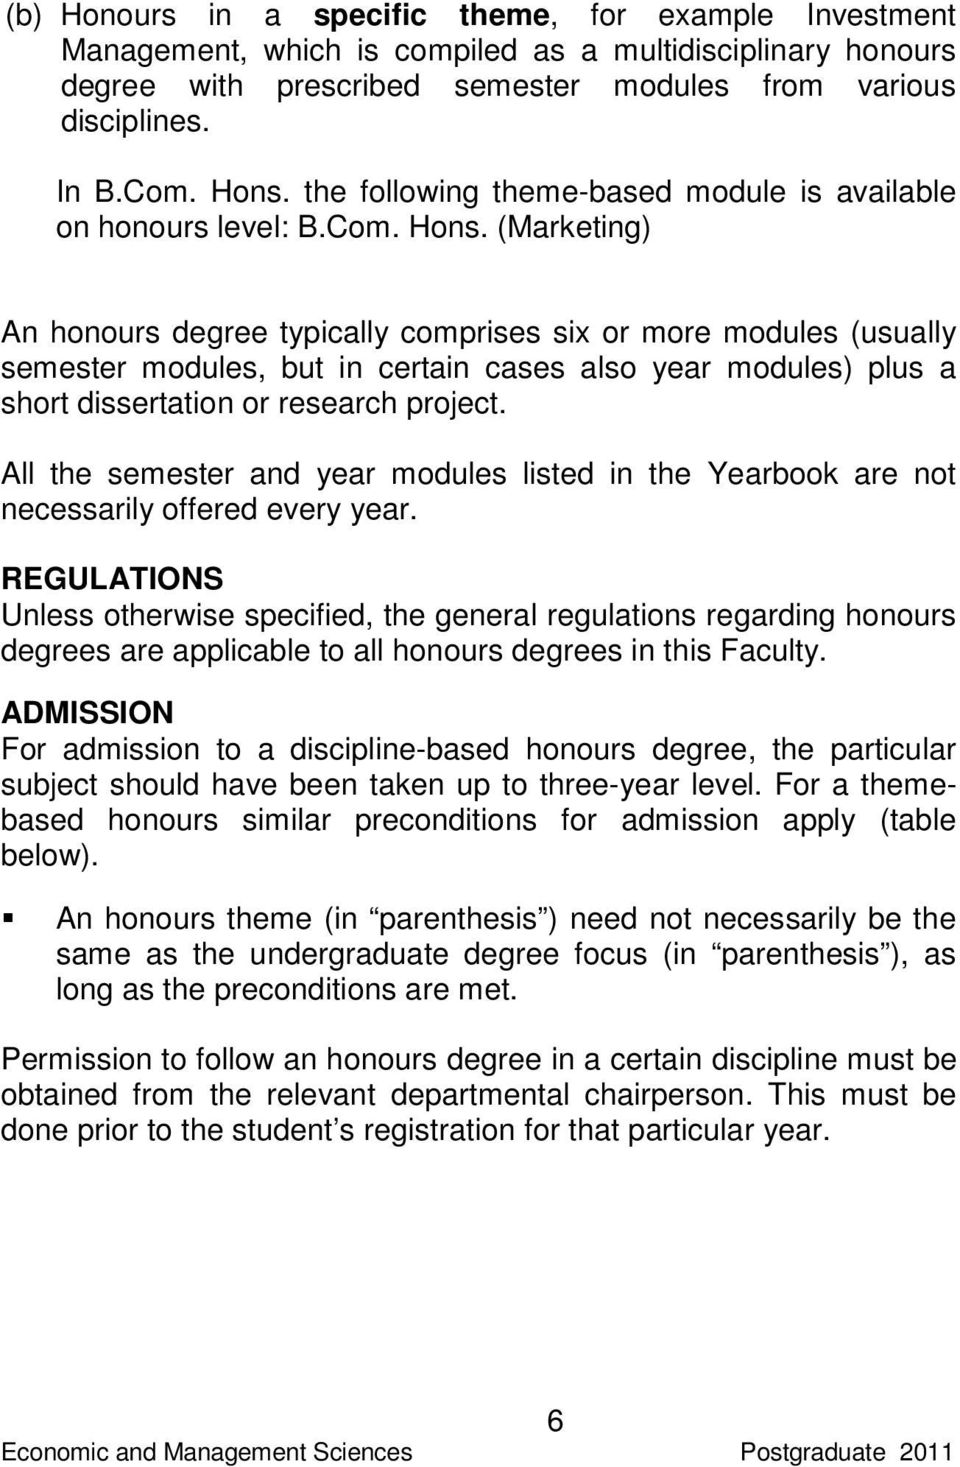 (Marketing) An honours degree typically comprises six or more modules (usually semester modules, but in certain cases also year modules) plus a short dissertation or research project.